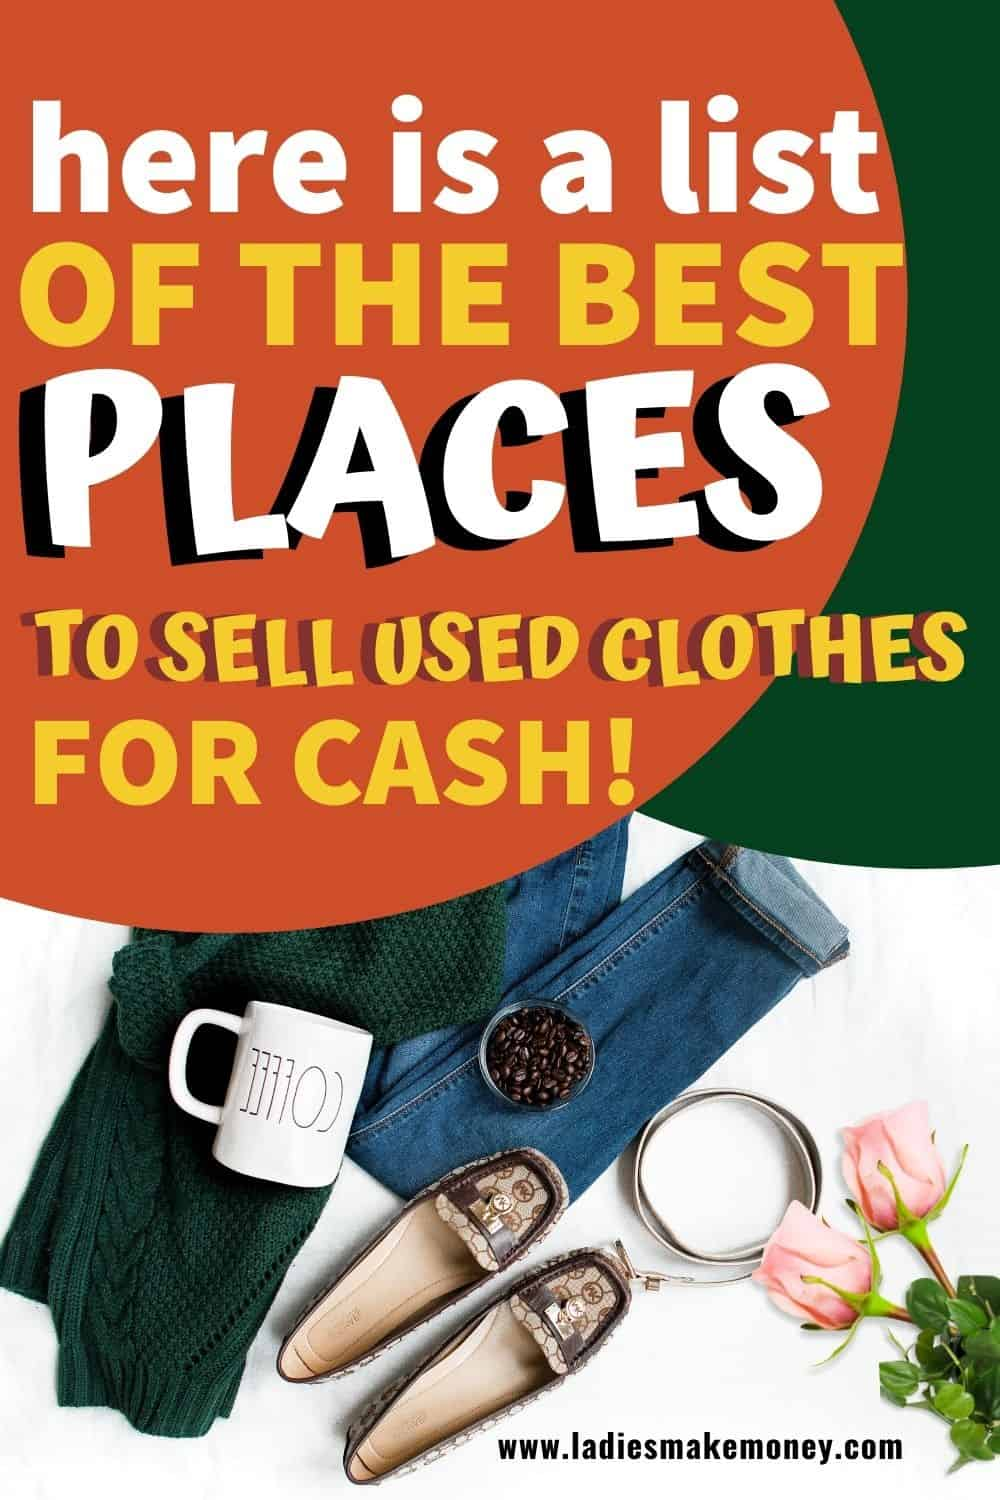 Are you looking to sell your old clothes for cash? Here are some of the best places to sell old clothes for cash today. We have a great list of the best place to sell clothes online #sellclothes #makemoneysellingclothes